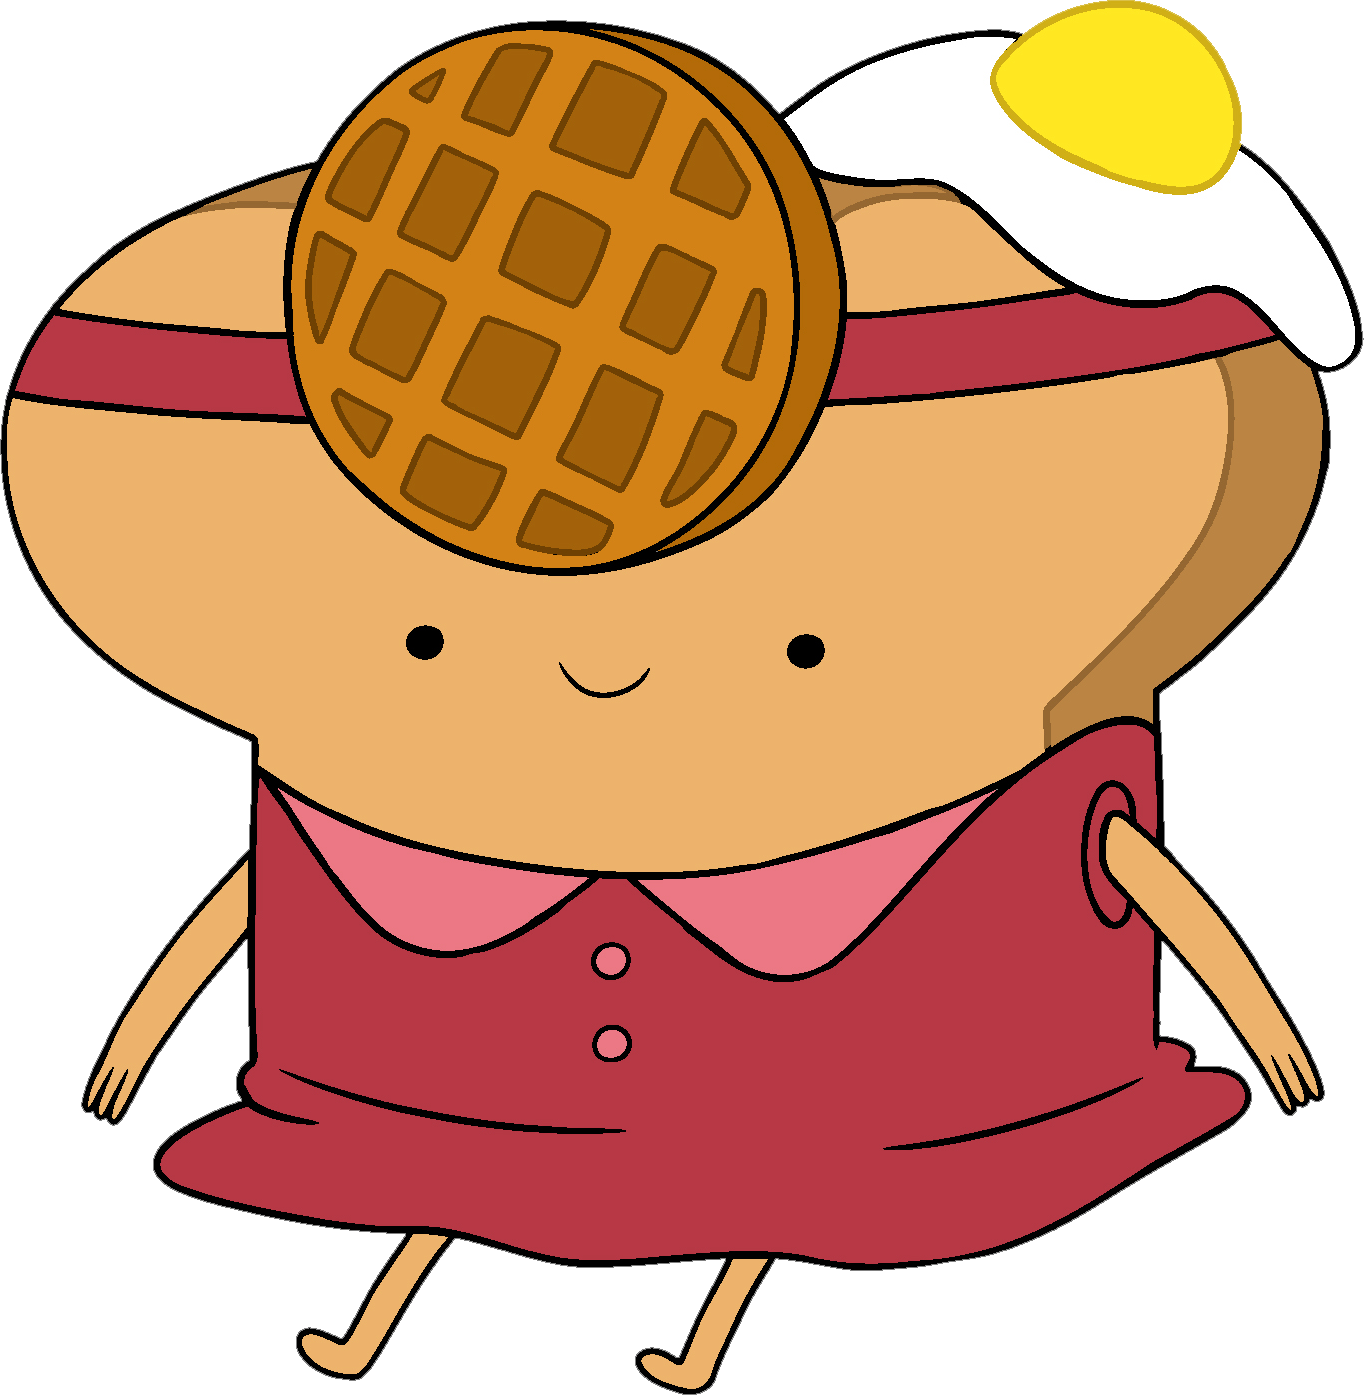 Princesses adventure time character. Waffle clipart toaster